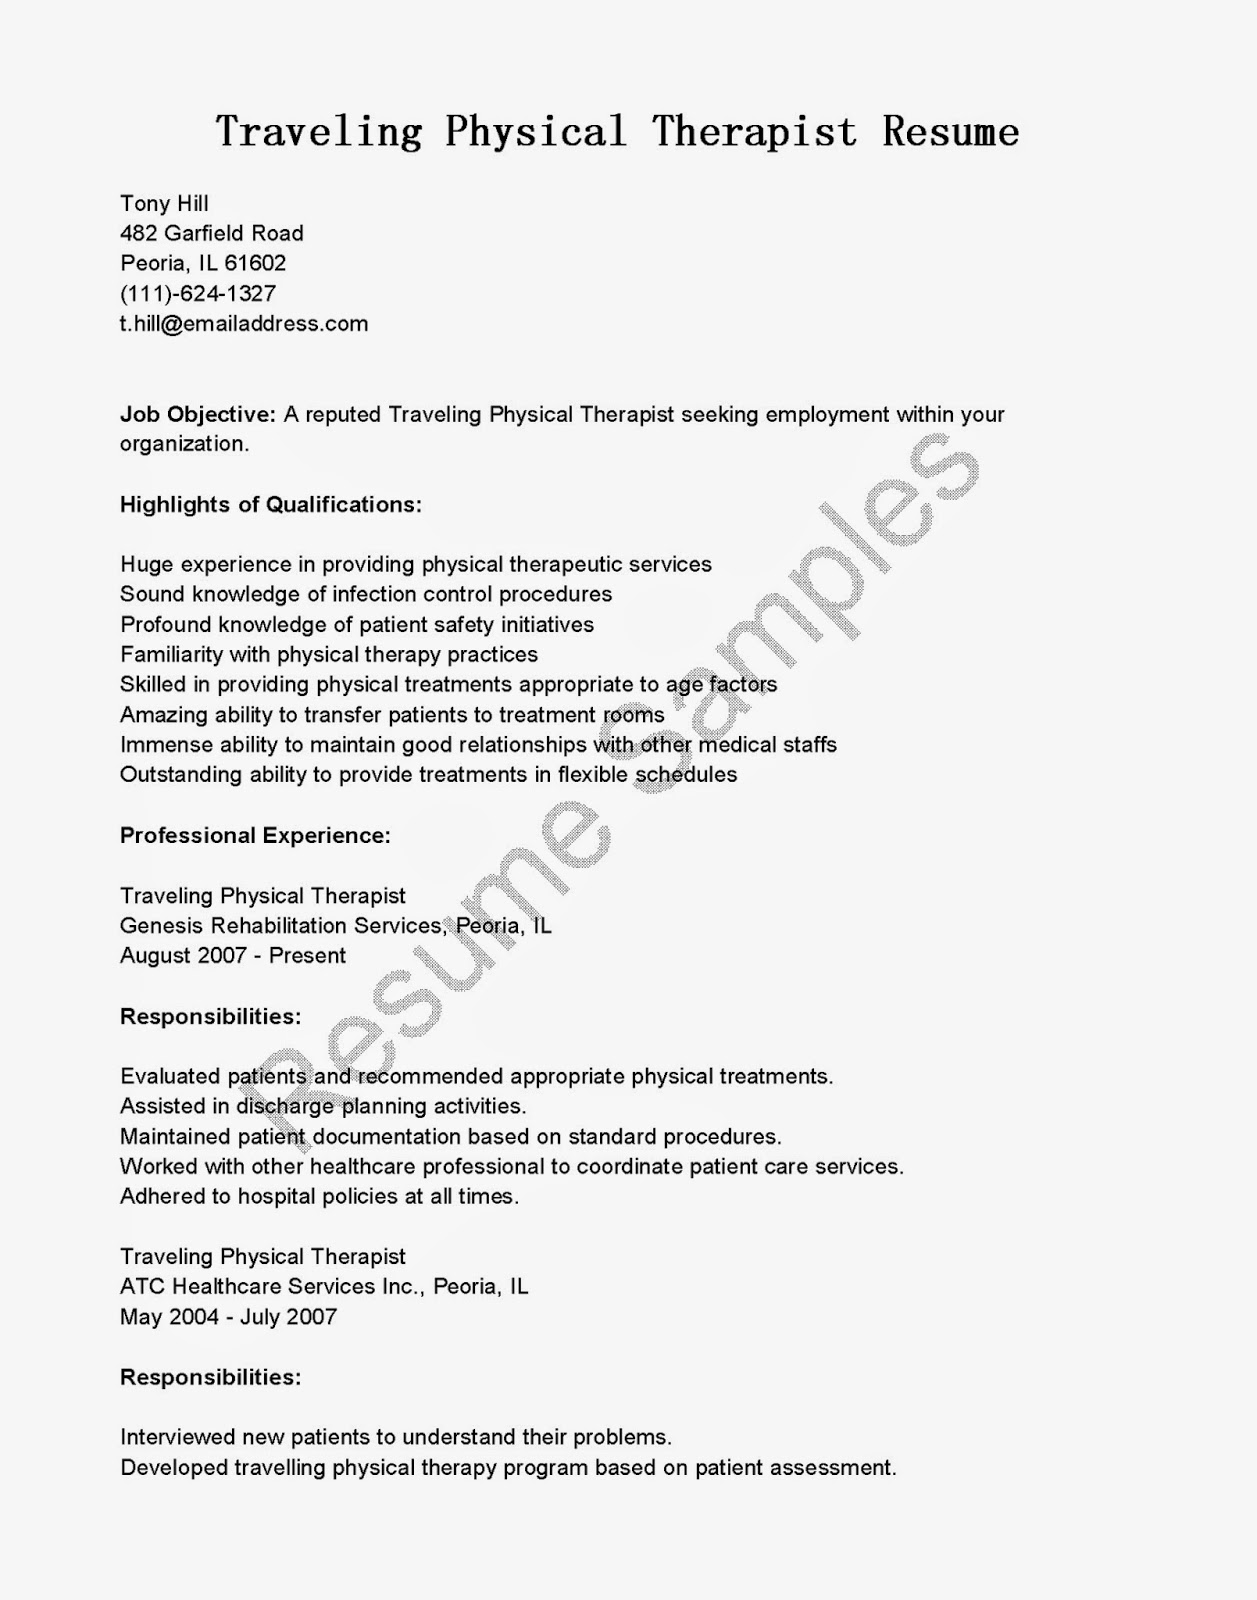 Breakupus Winsome Accountant Resume Sample And Tips Resume Genius With  Glamorous Accountant Resume Sample With Delightful